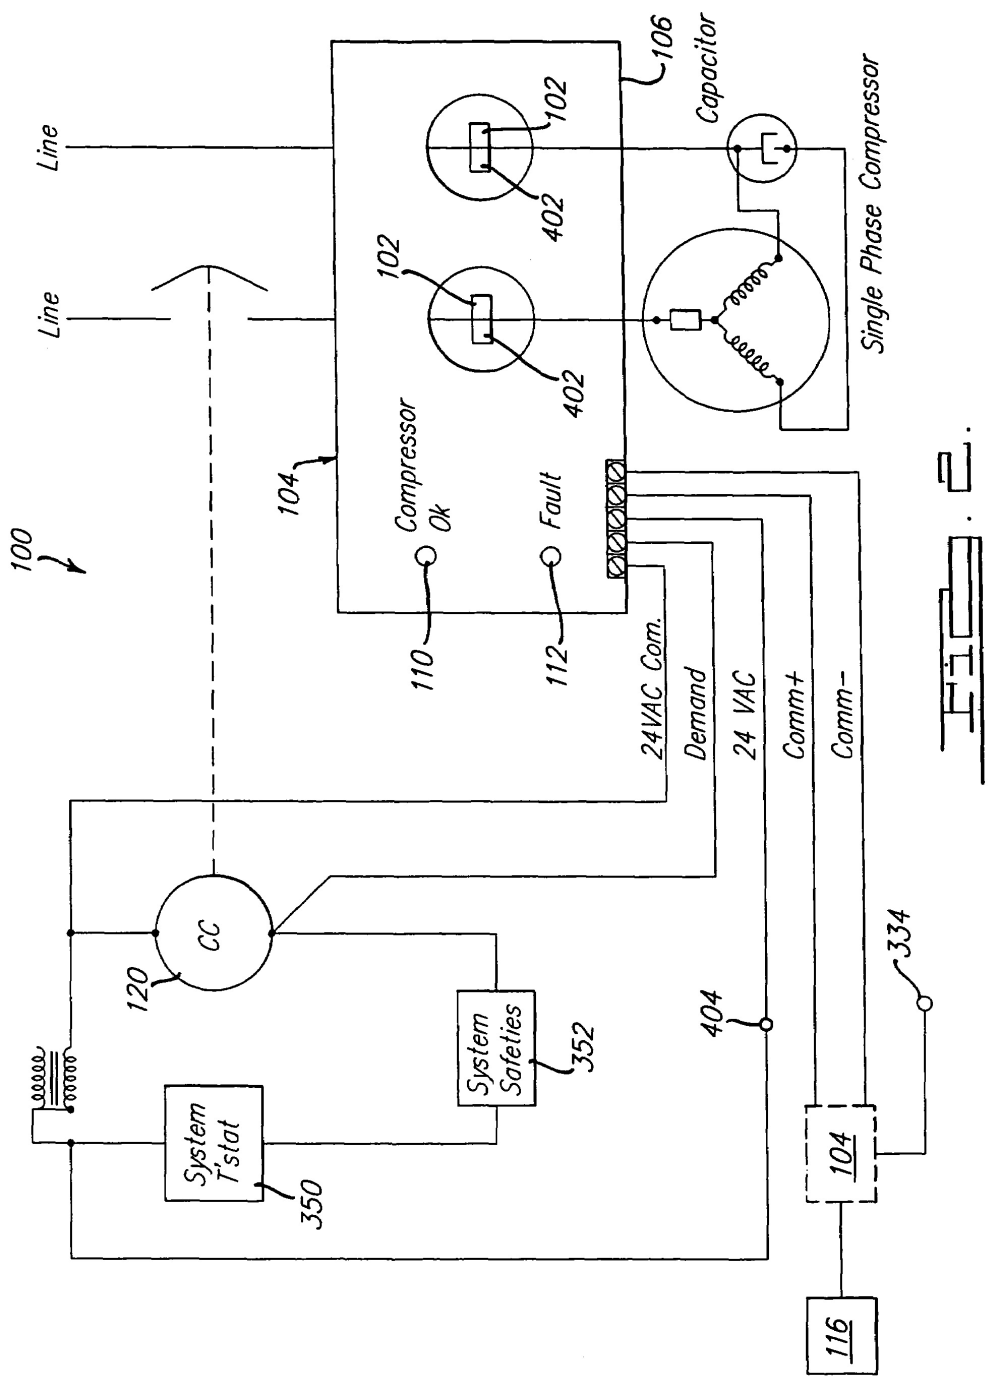 medium resolution of copeland compressor schematic wiring diagrams copeland compressor electrical schematic